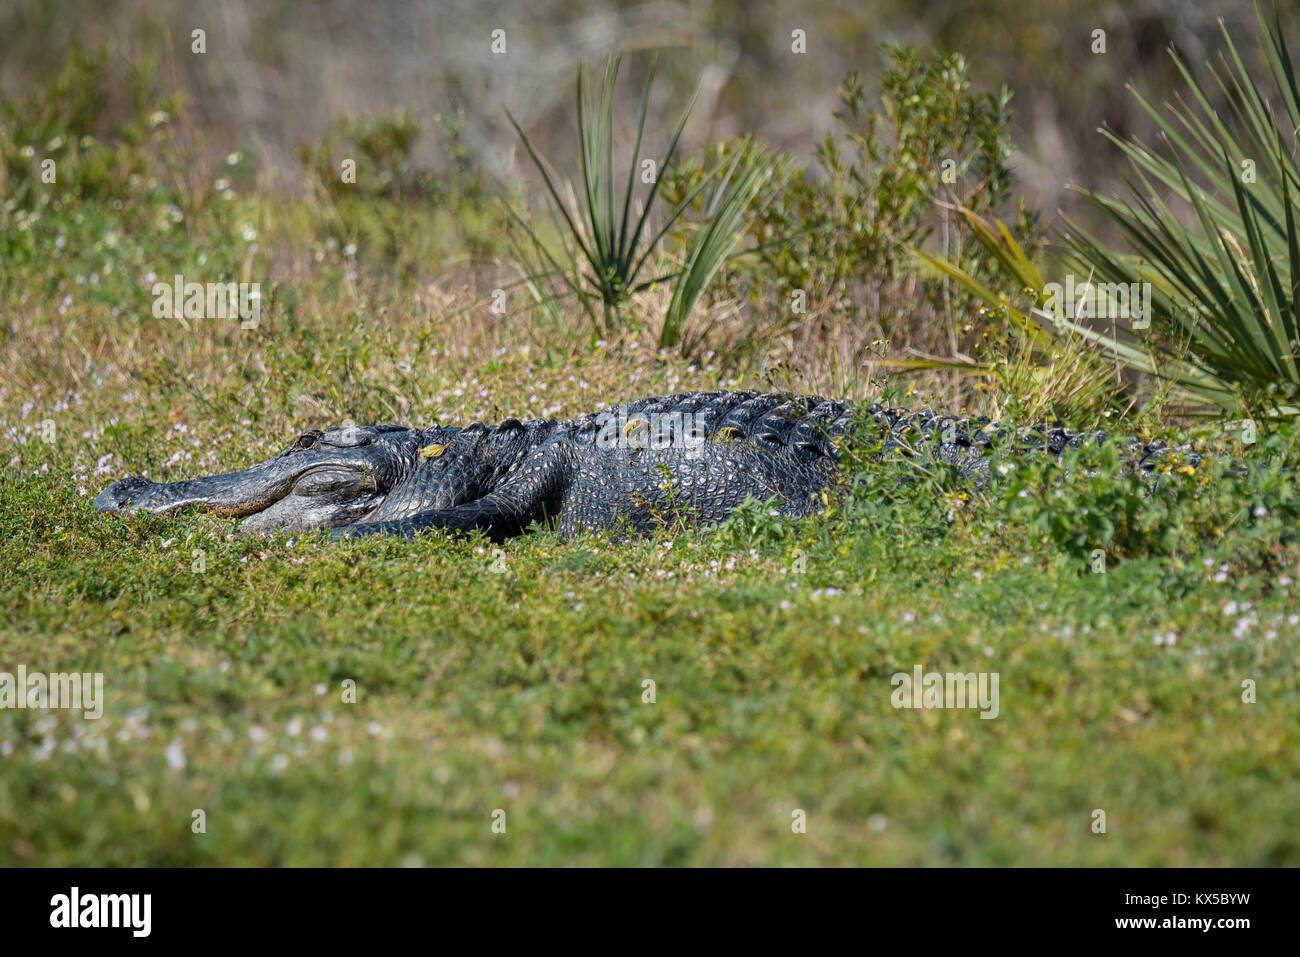 Alligator waiting in the grass - Stock Image